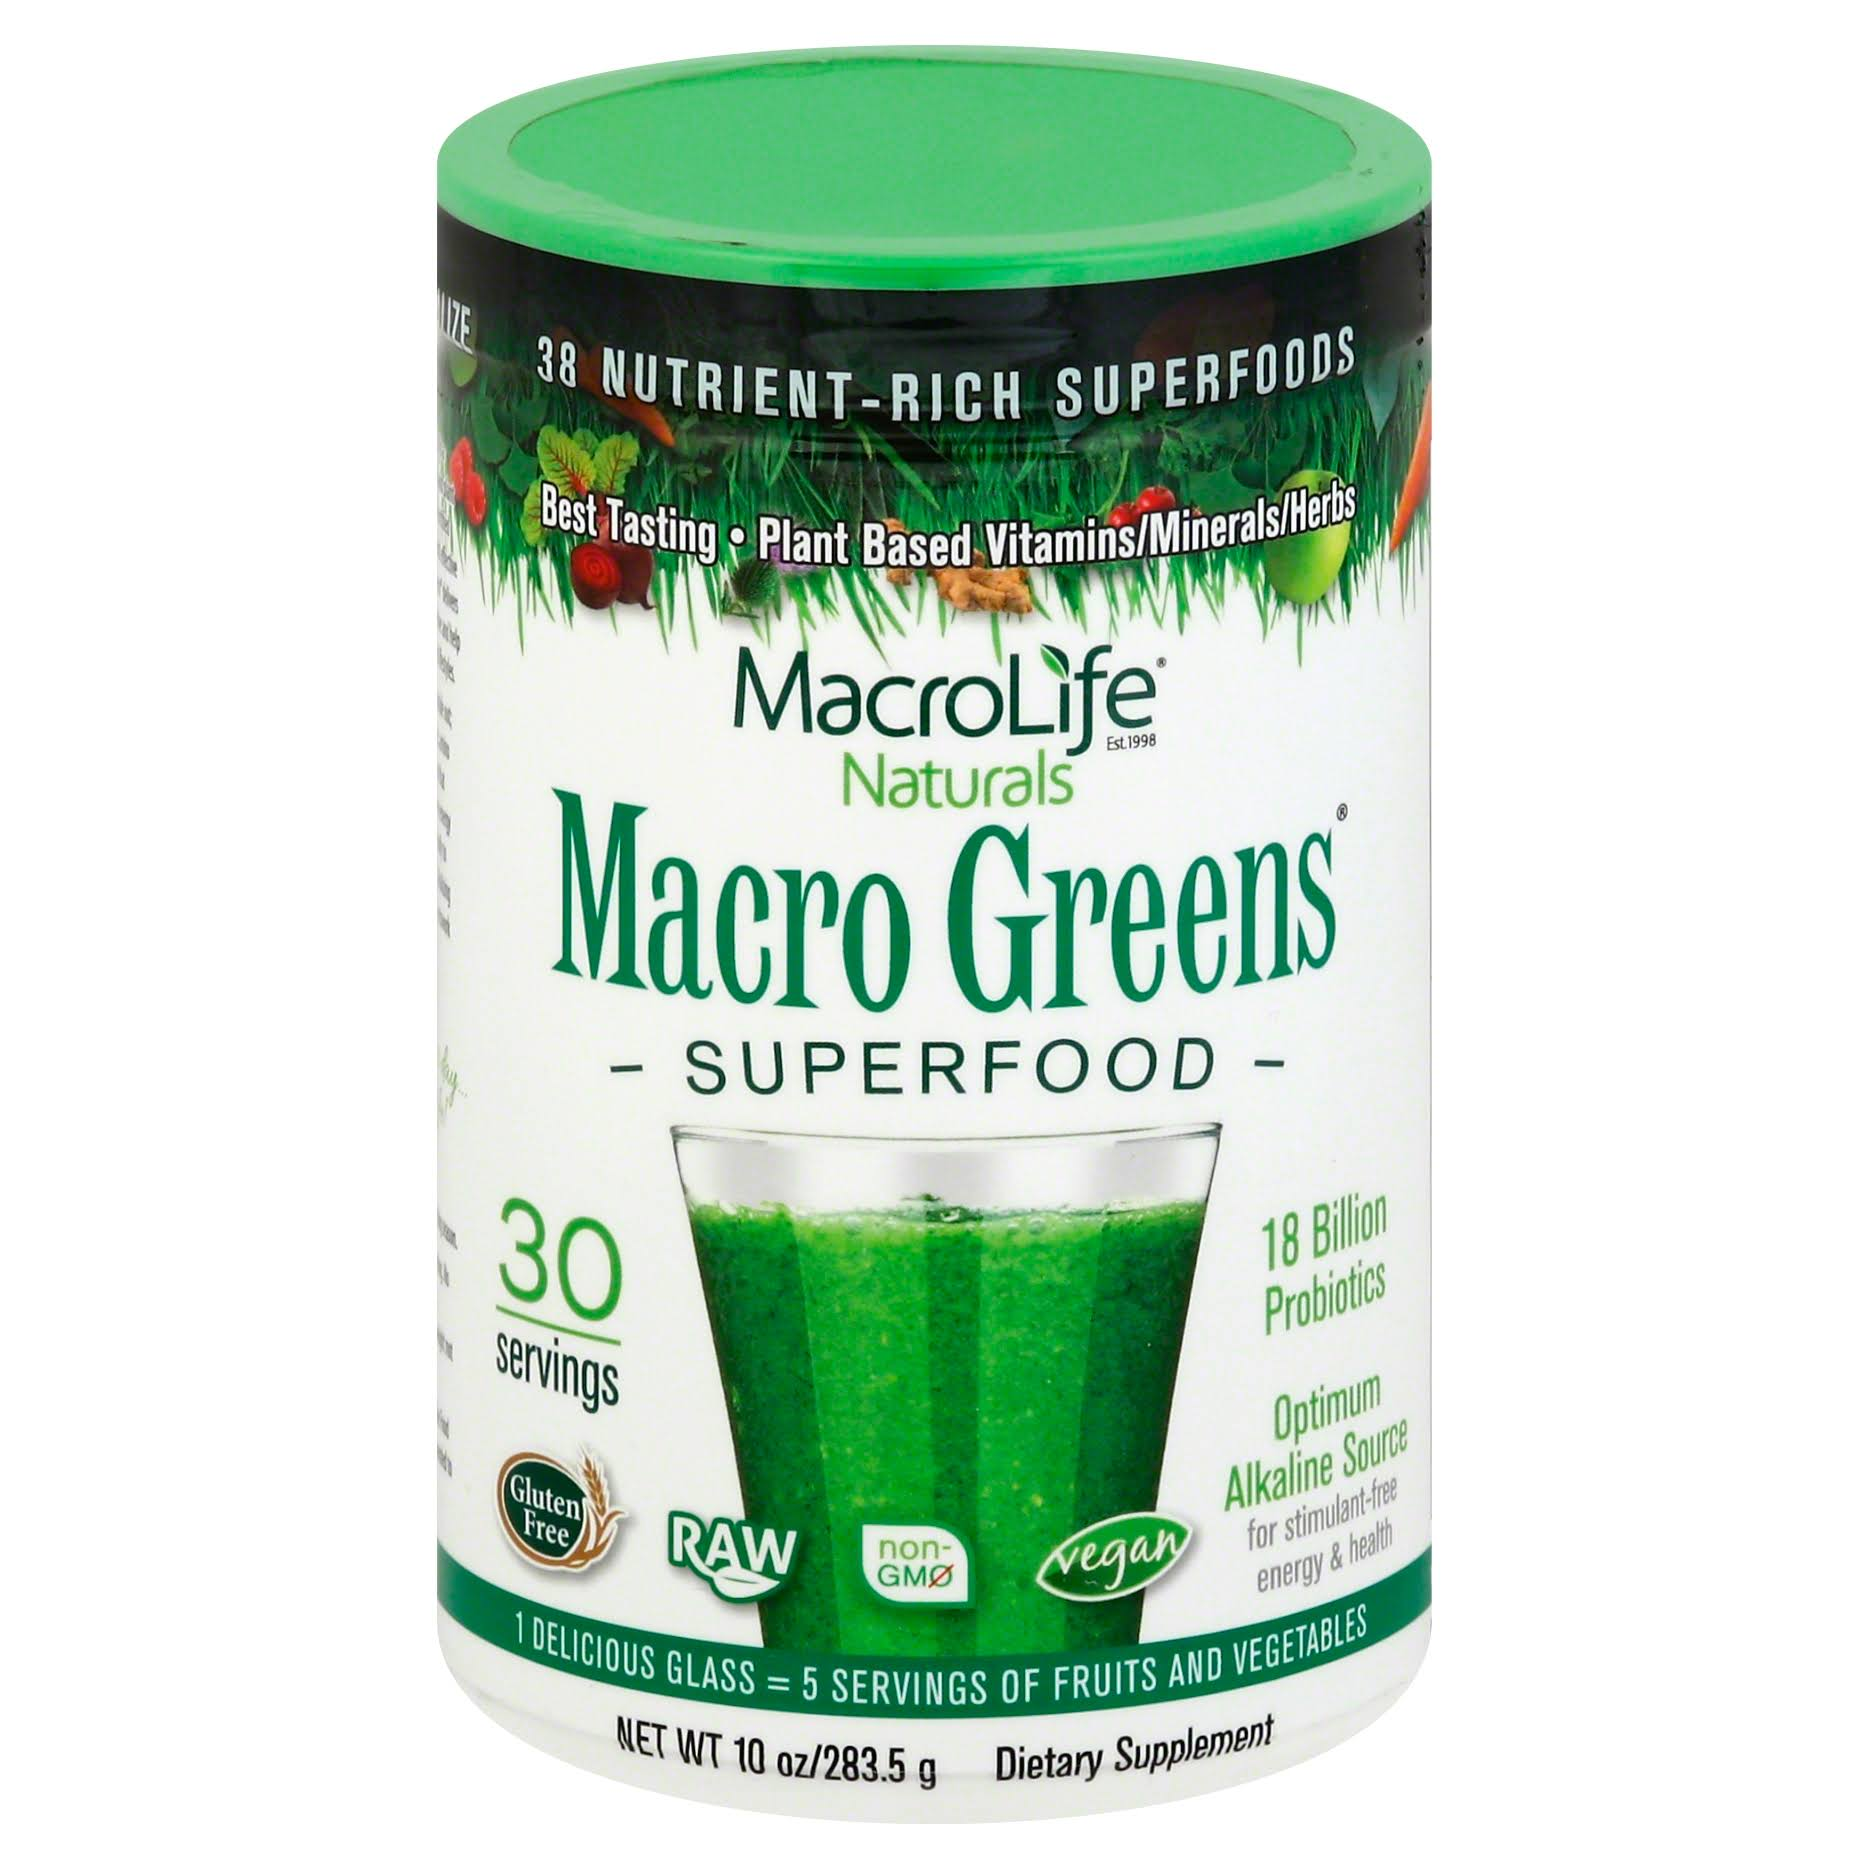 Macrolife Naturals Macro Greens Superfood Dietary Supplement - 10oz